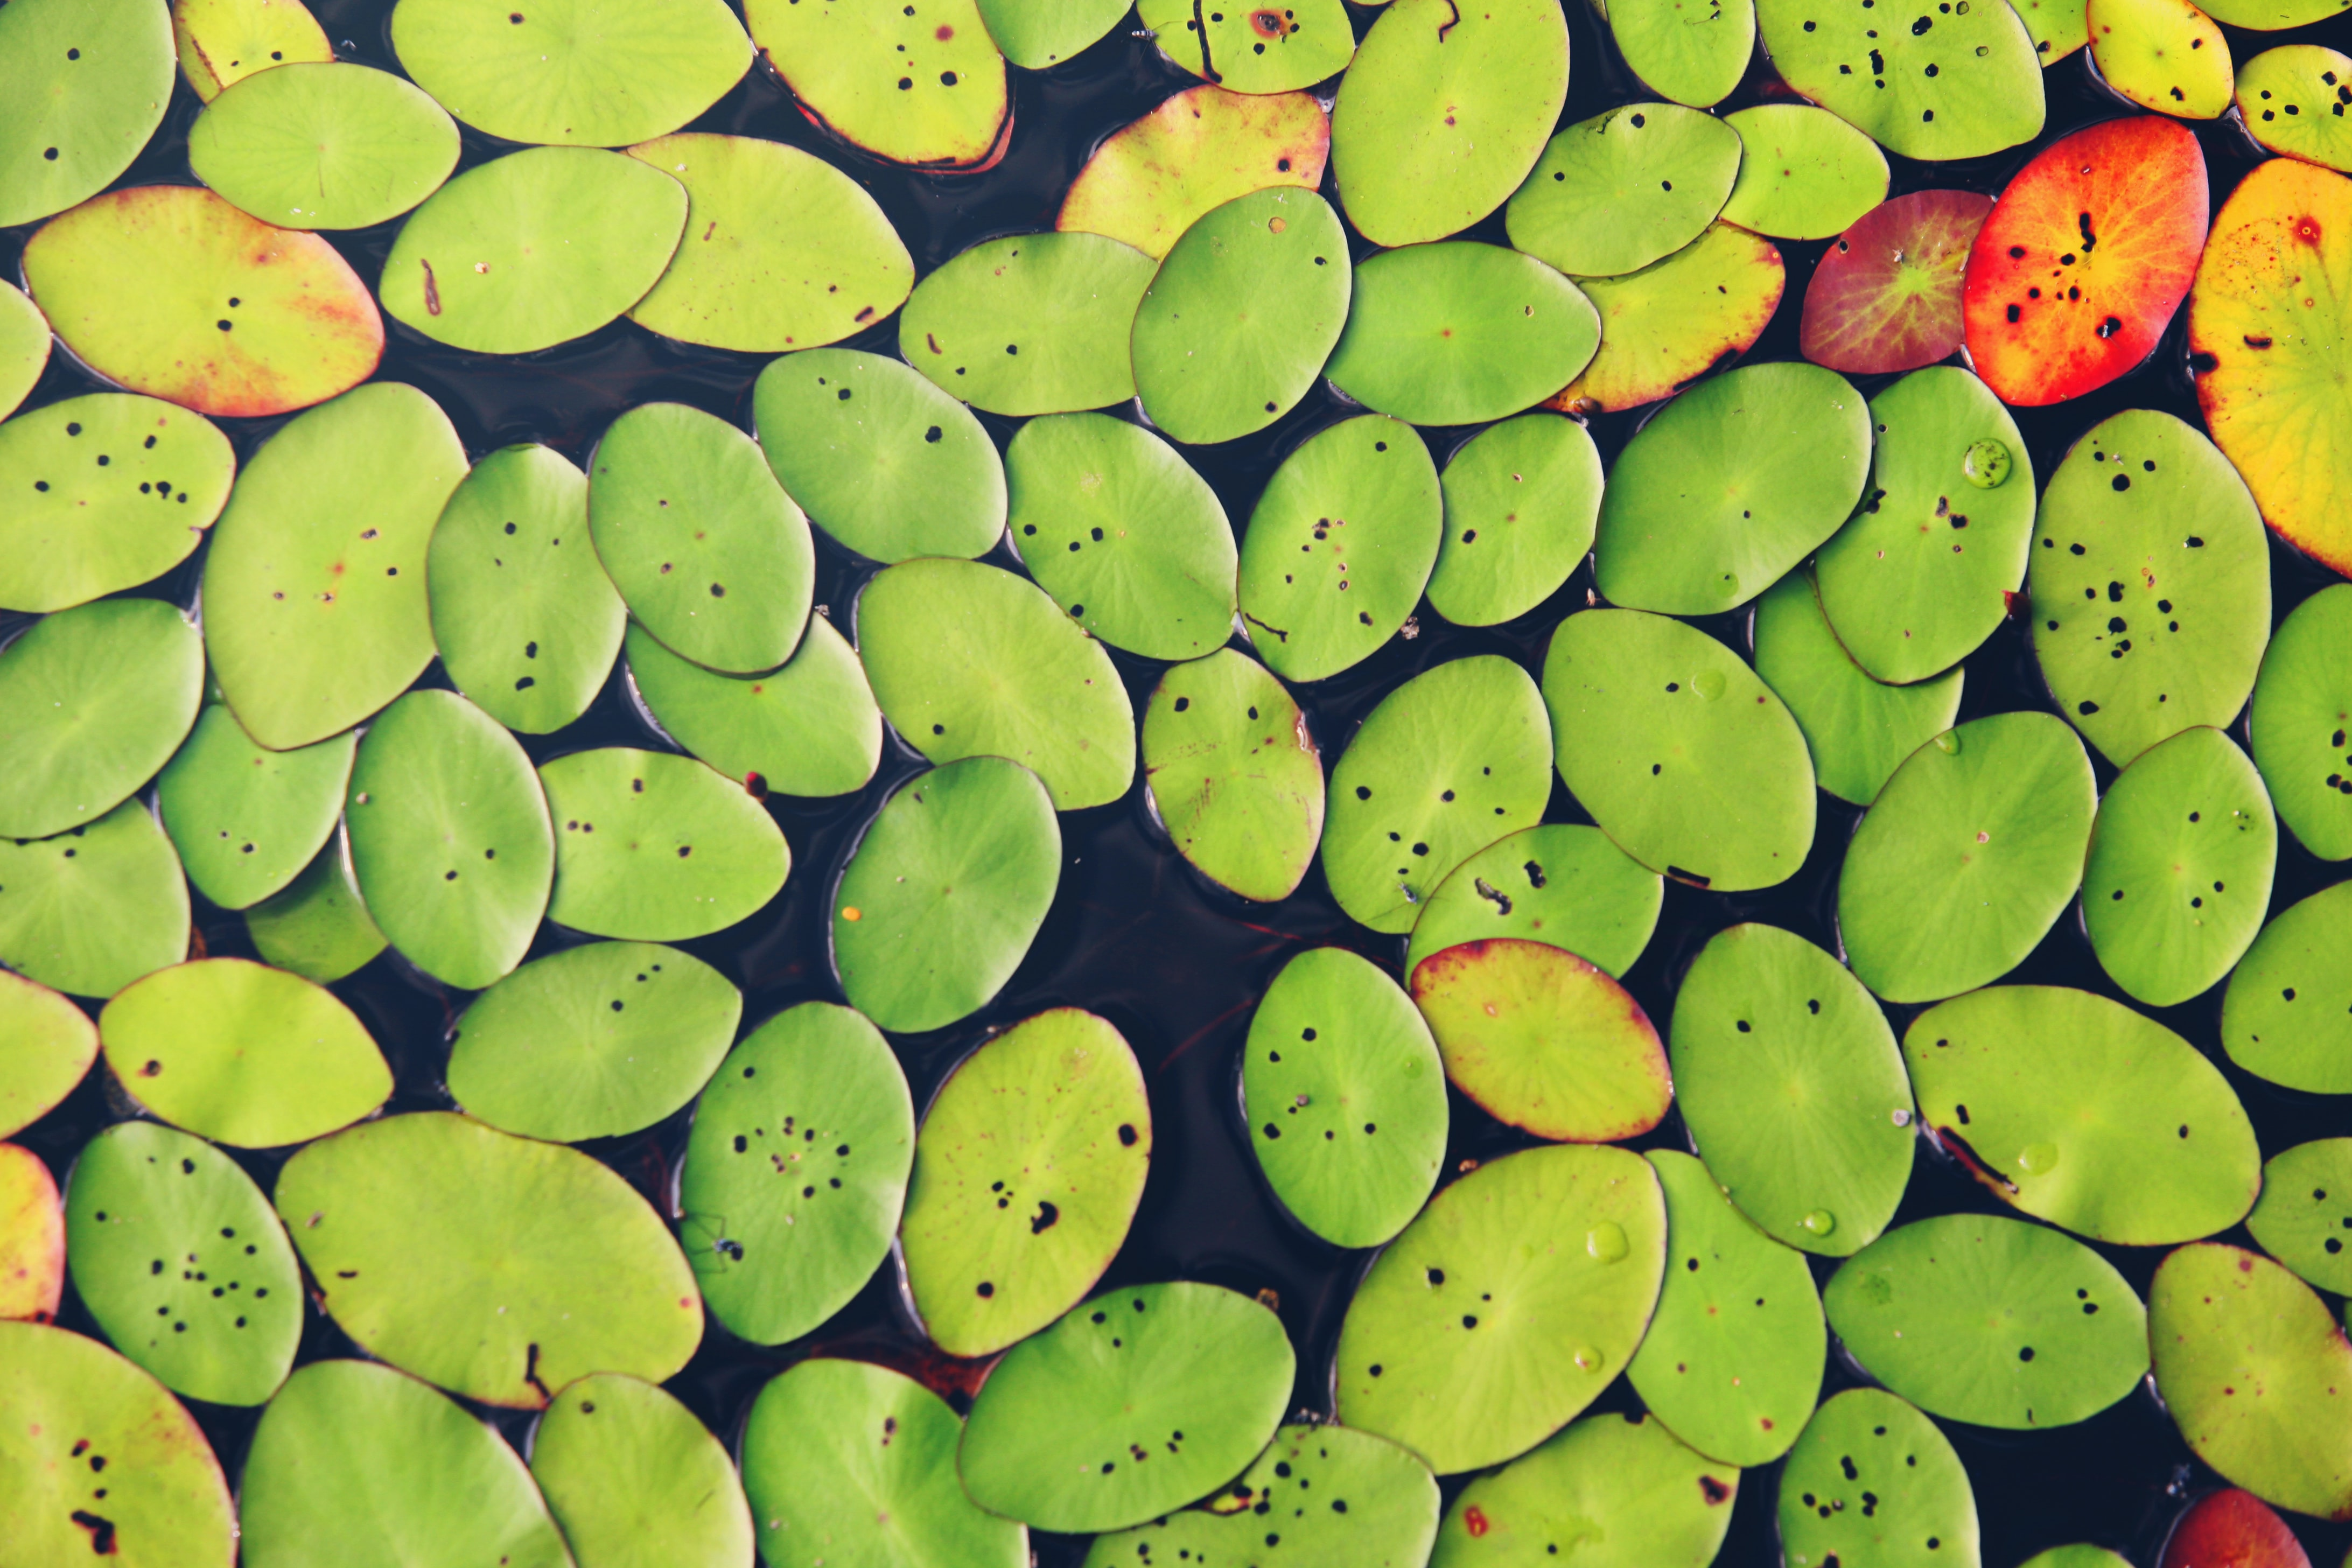 A top view of a cluster of green and yellow lily pads on the surface of water